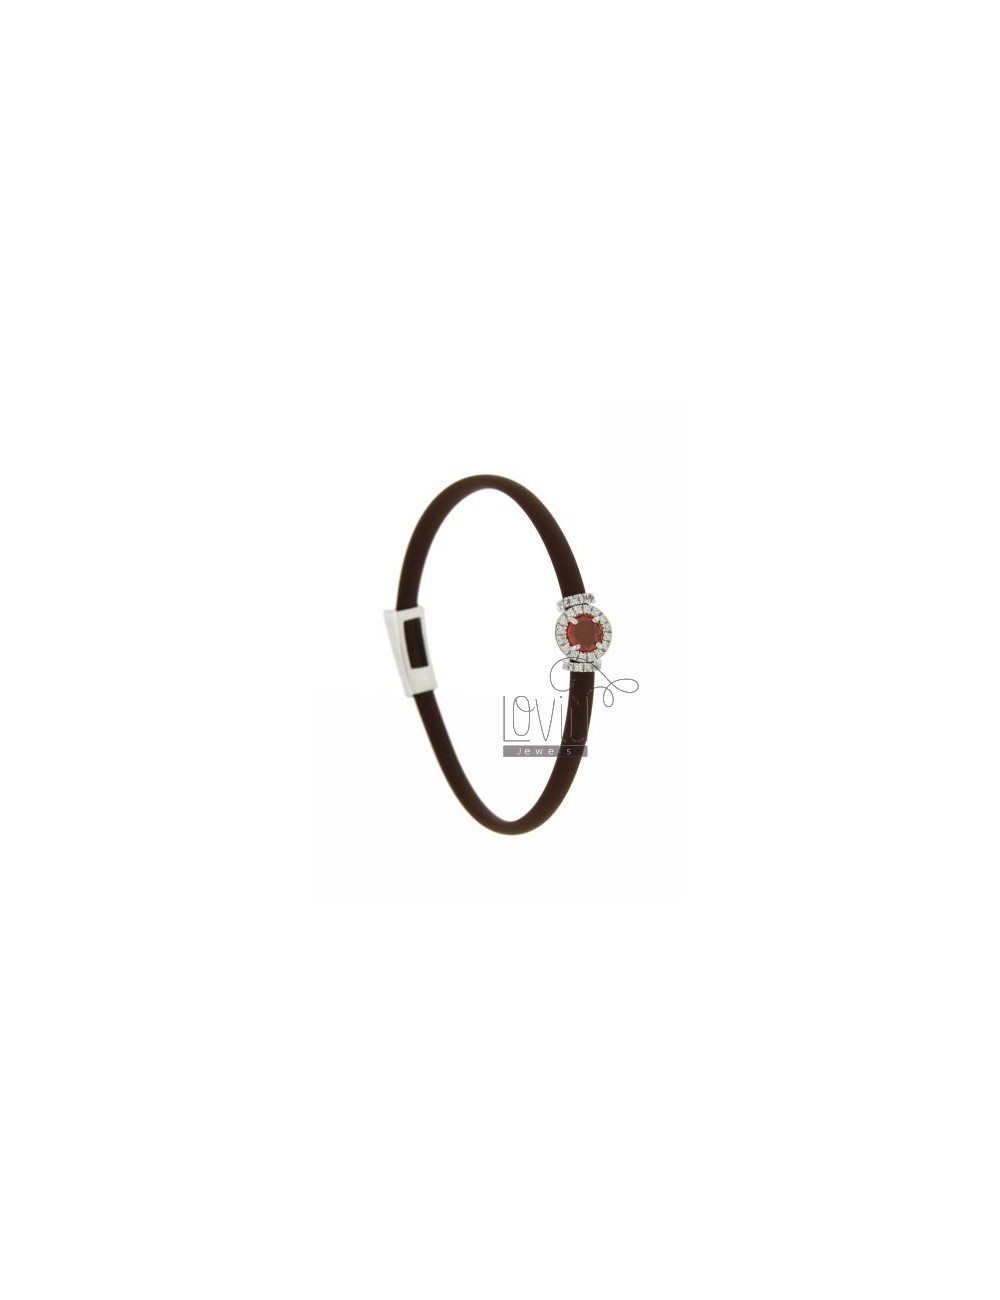 RUBBER BRACELET &39BROWN AND APPLICATION ROUND TIT AG RHODIUM 925 ‰, ZIRCONS HYDROTHERMAL VARIOUS COLORS AND STONES